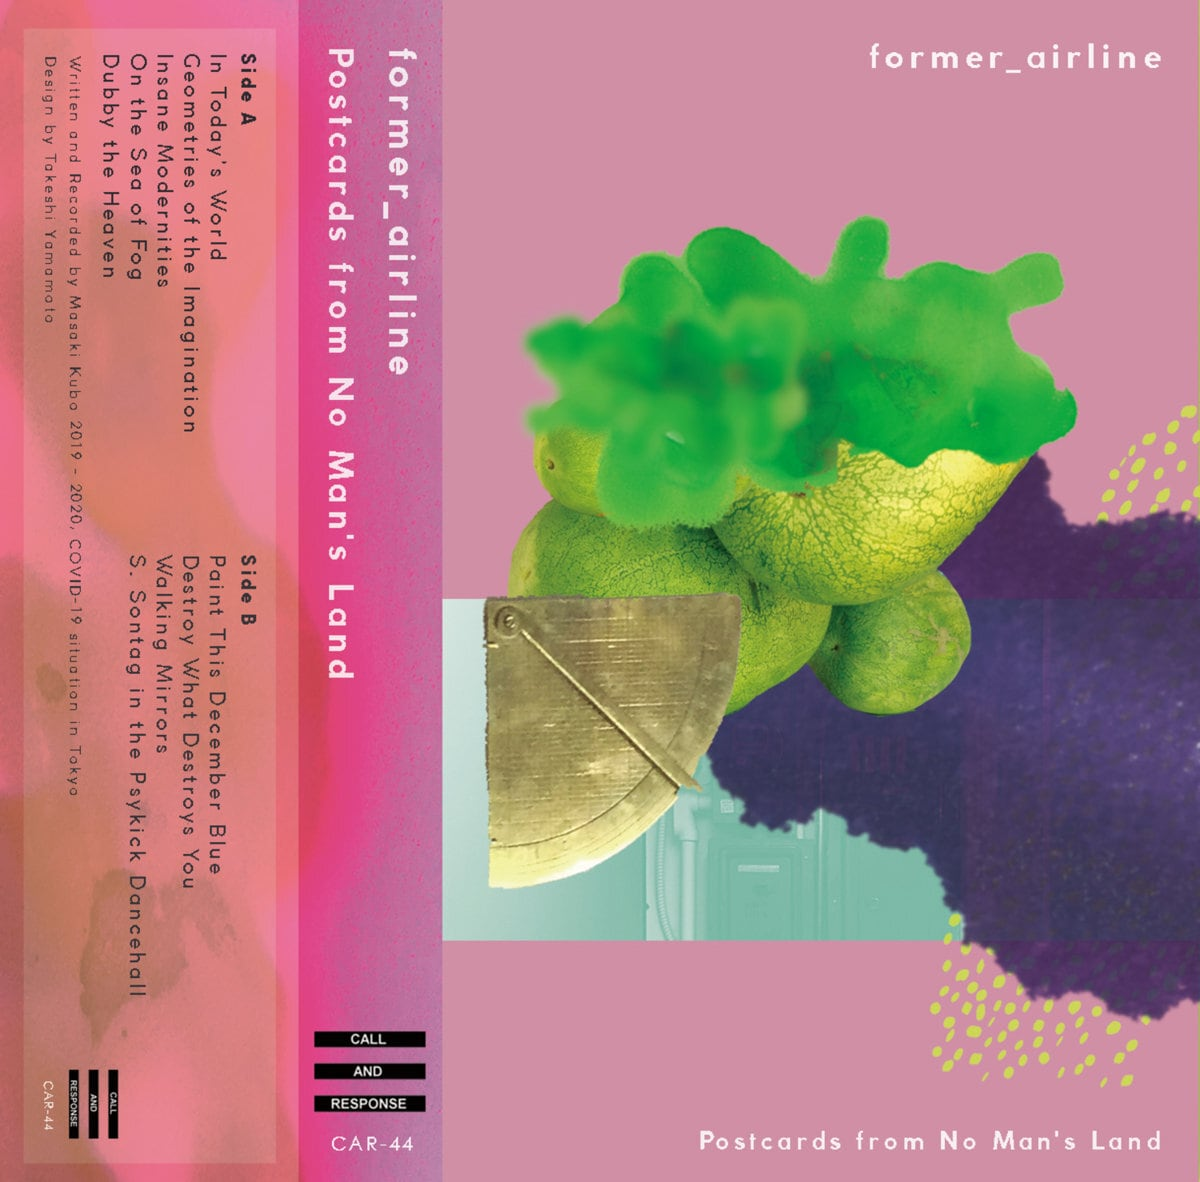 former_airline - Postcards from No Man's Land (Cassette Tape)